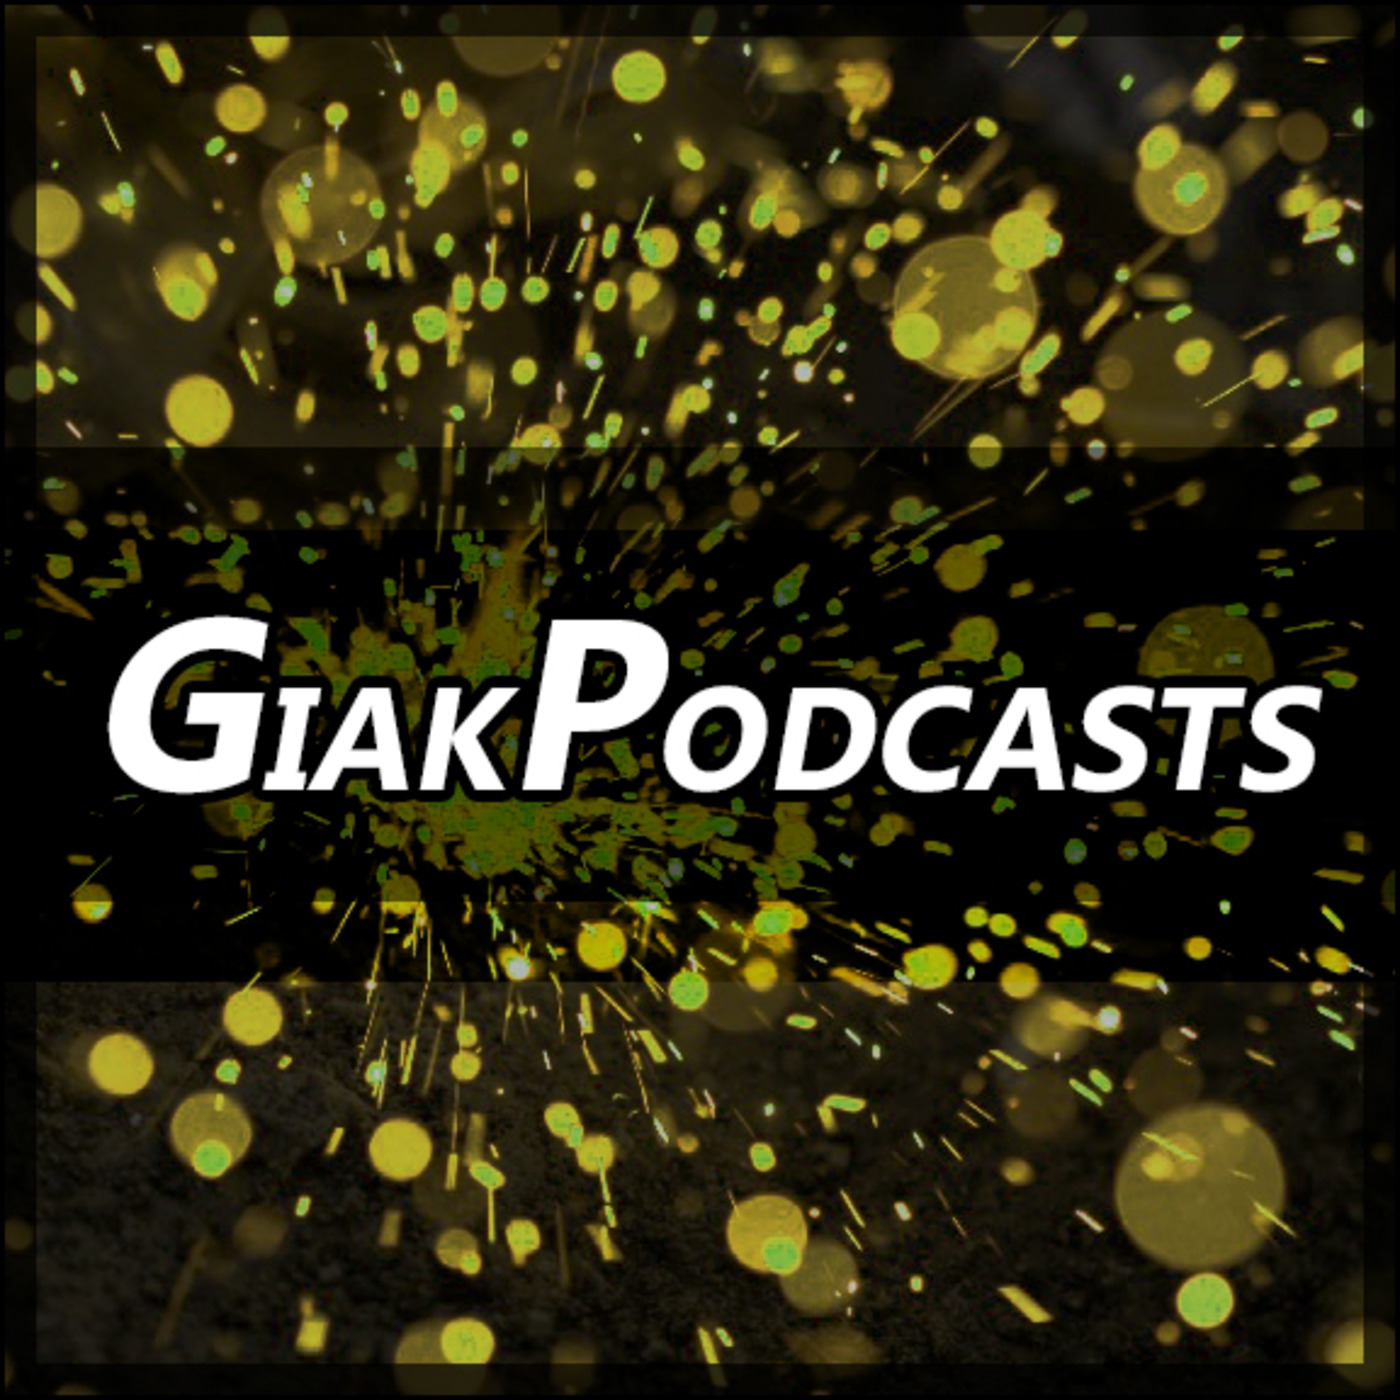 GiakPodcasts